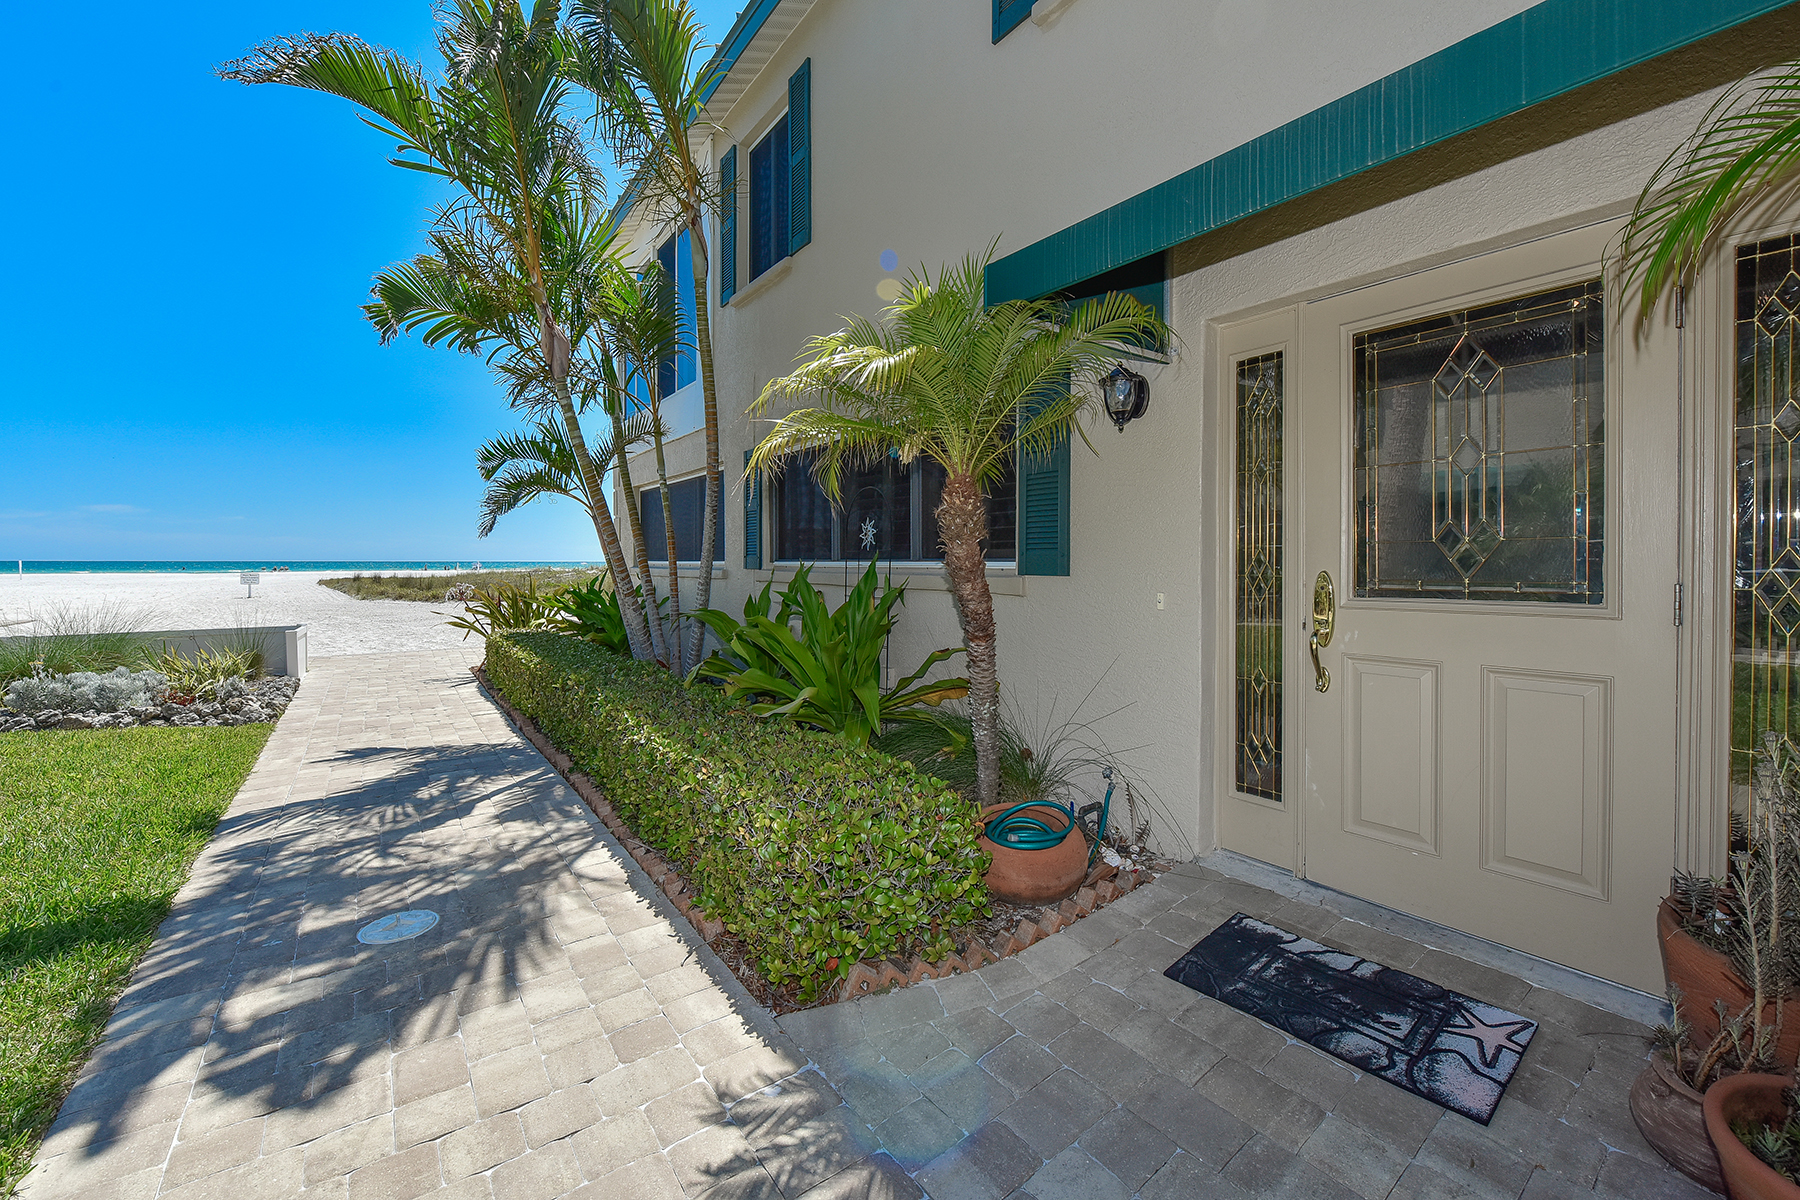 Condominio por un Venta en GULF HAVEN - SARASOTA 5860 Midnight Pass Rd 52 Sarasota, Florida, 34242 Estados Unidos